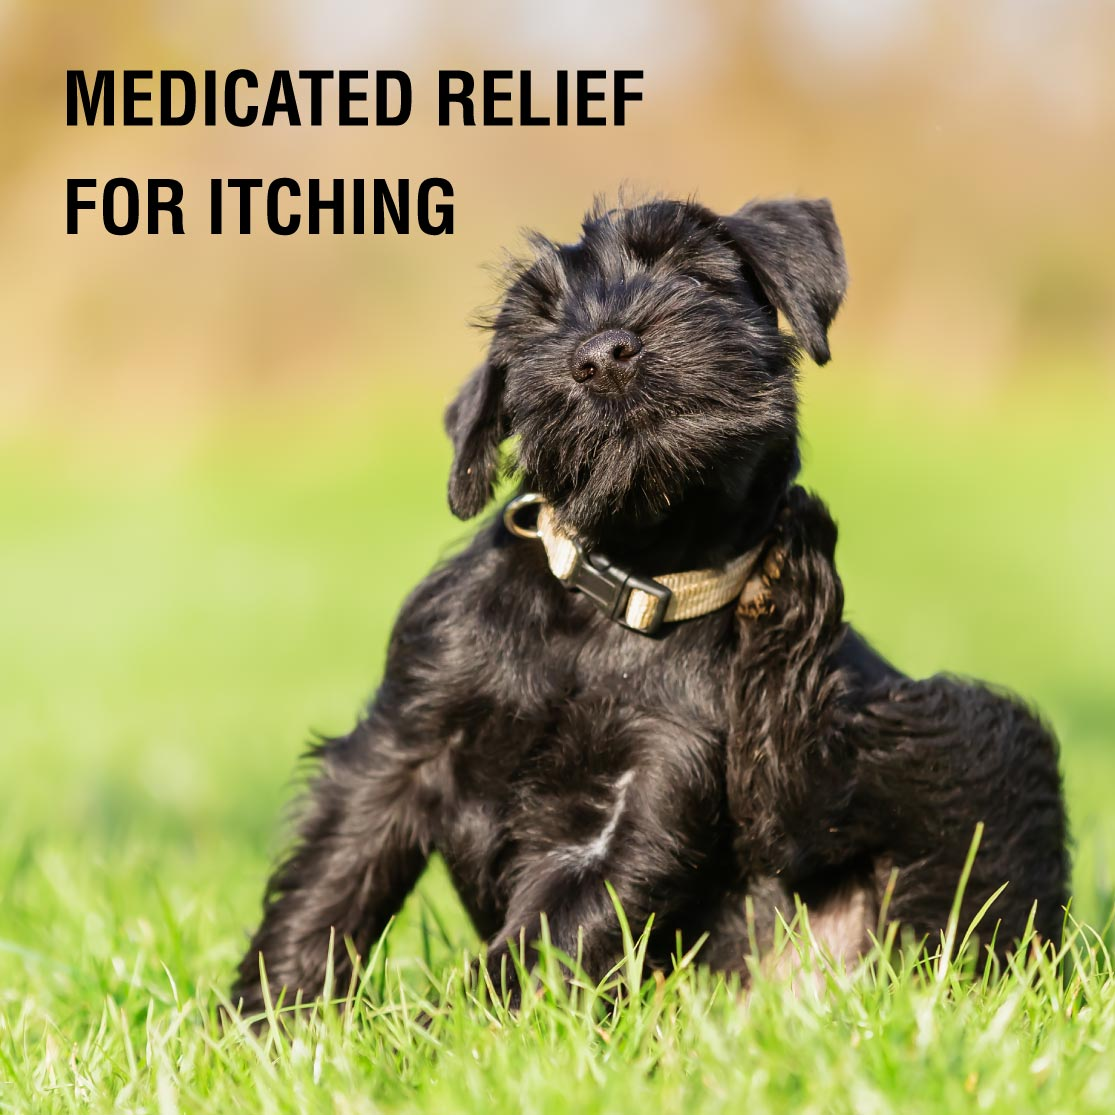 Medicated Relief for Itching